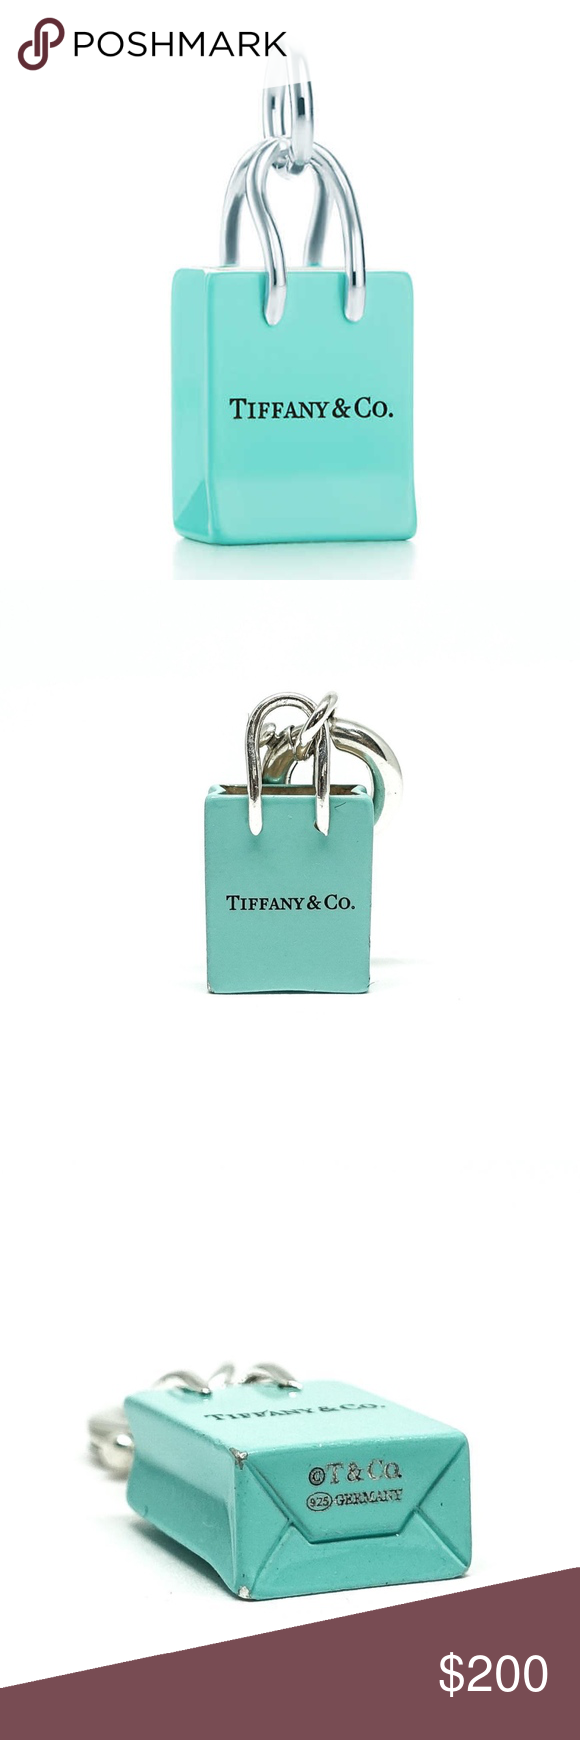 e1da7909ad Authentic TIFFANY & CO Shopping Bag Charm Spice up that bracelet or add a  little chic